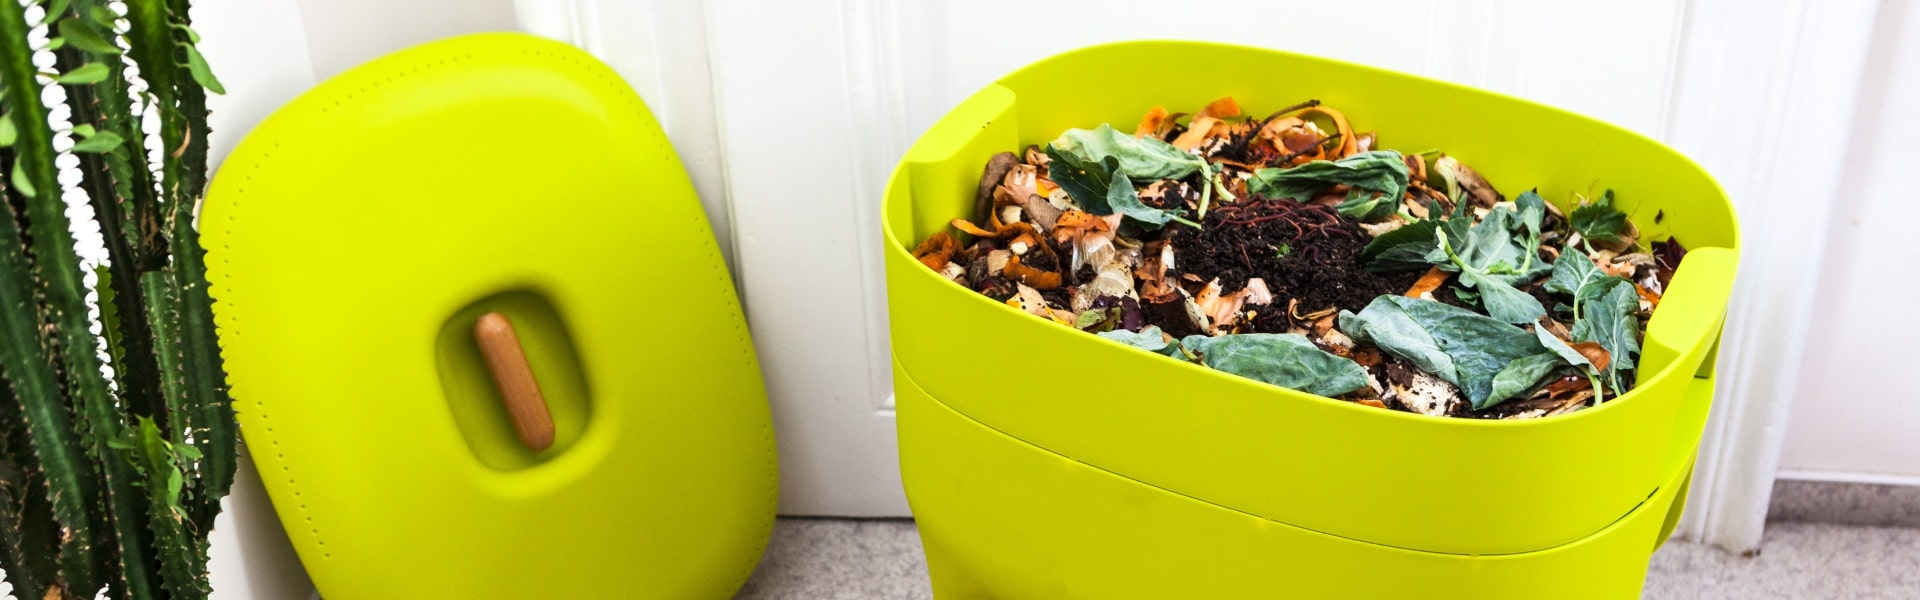 Best Worm Composters Reviewed in Detail